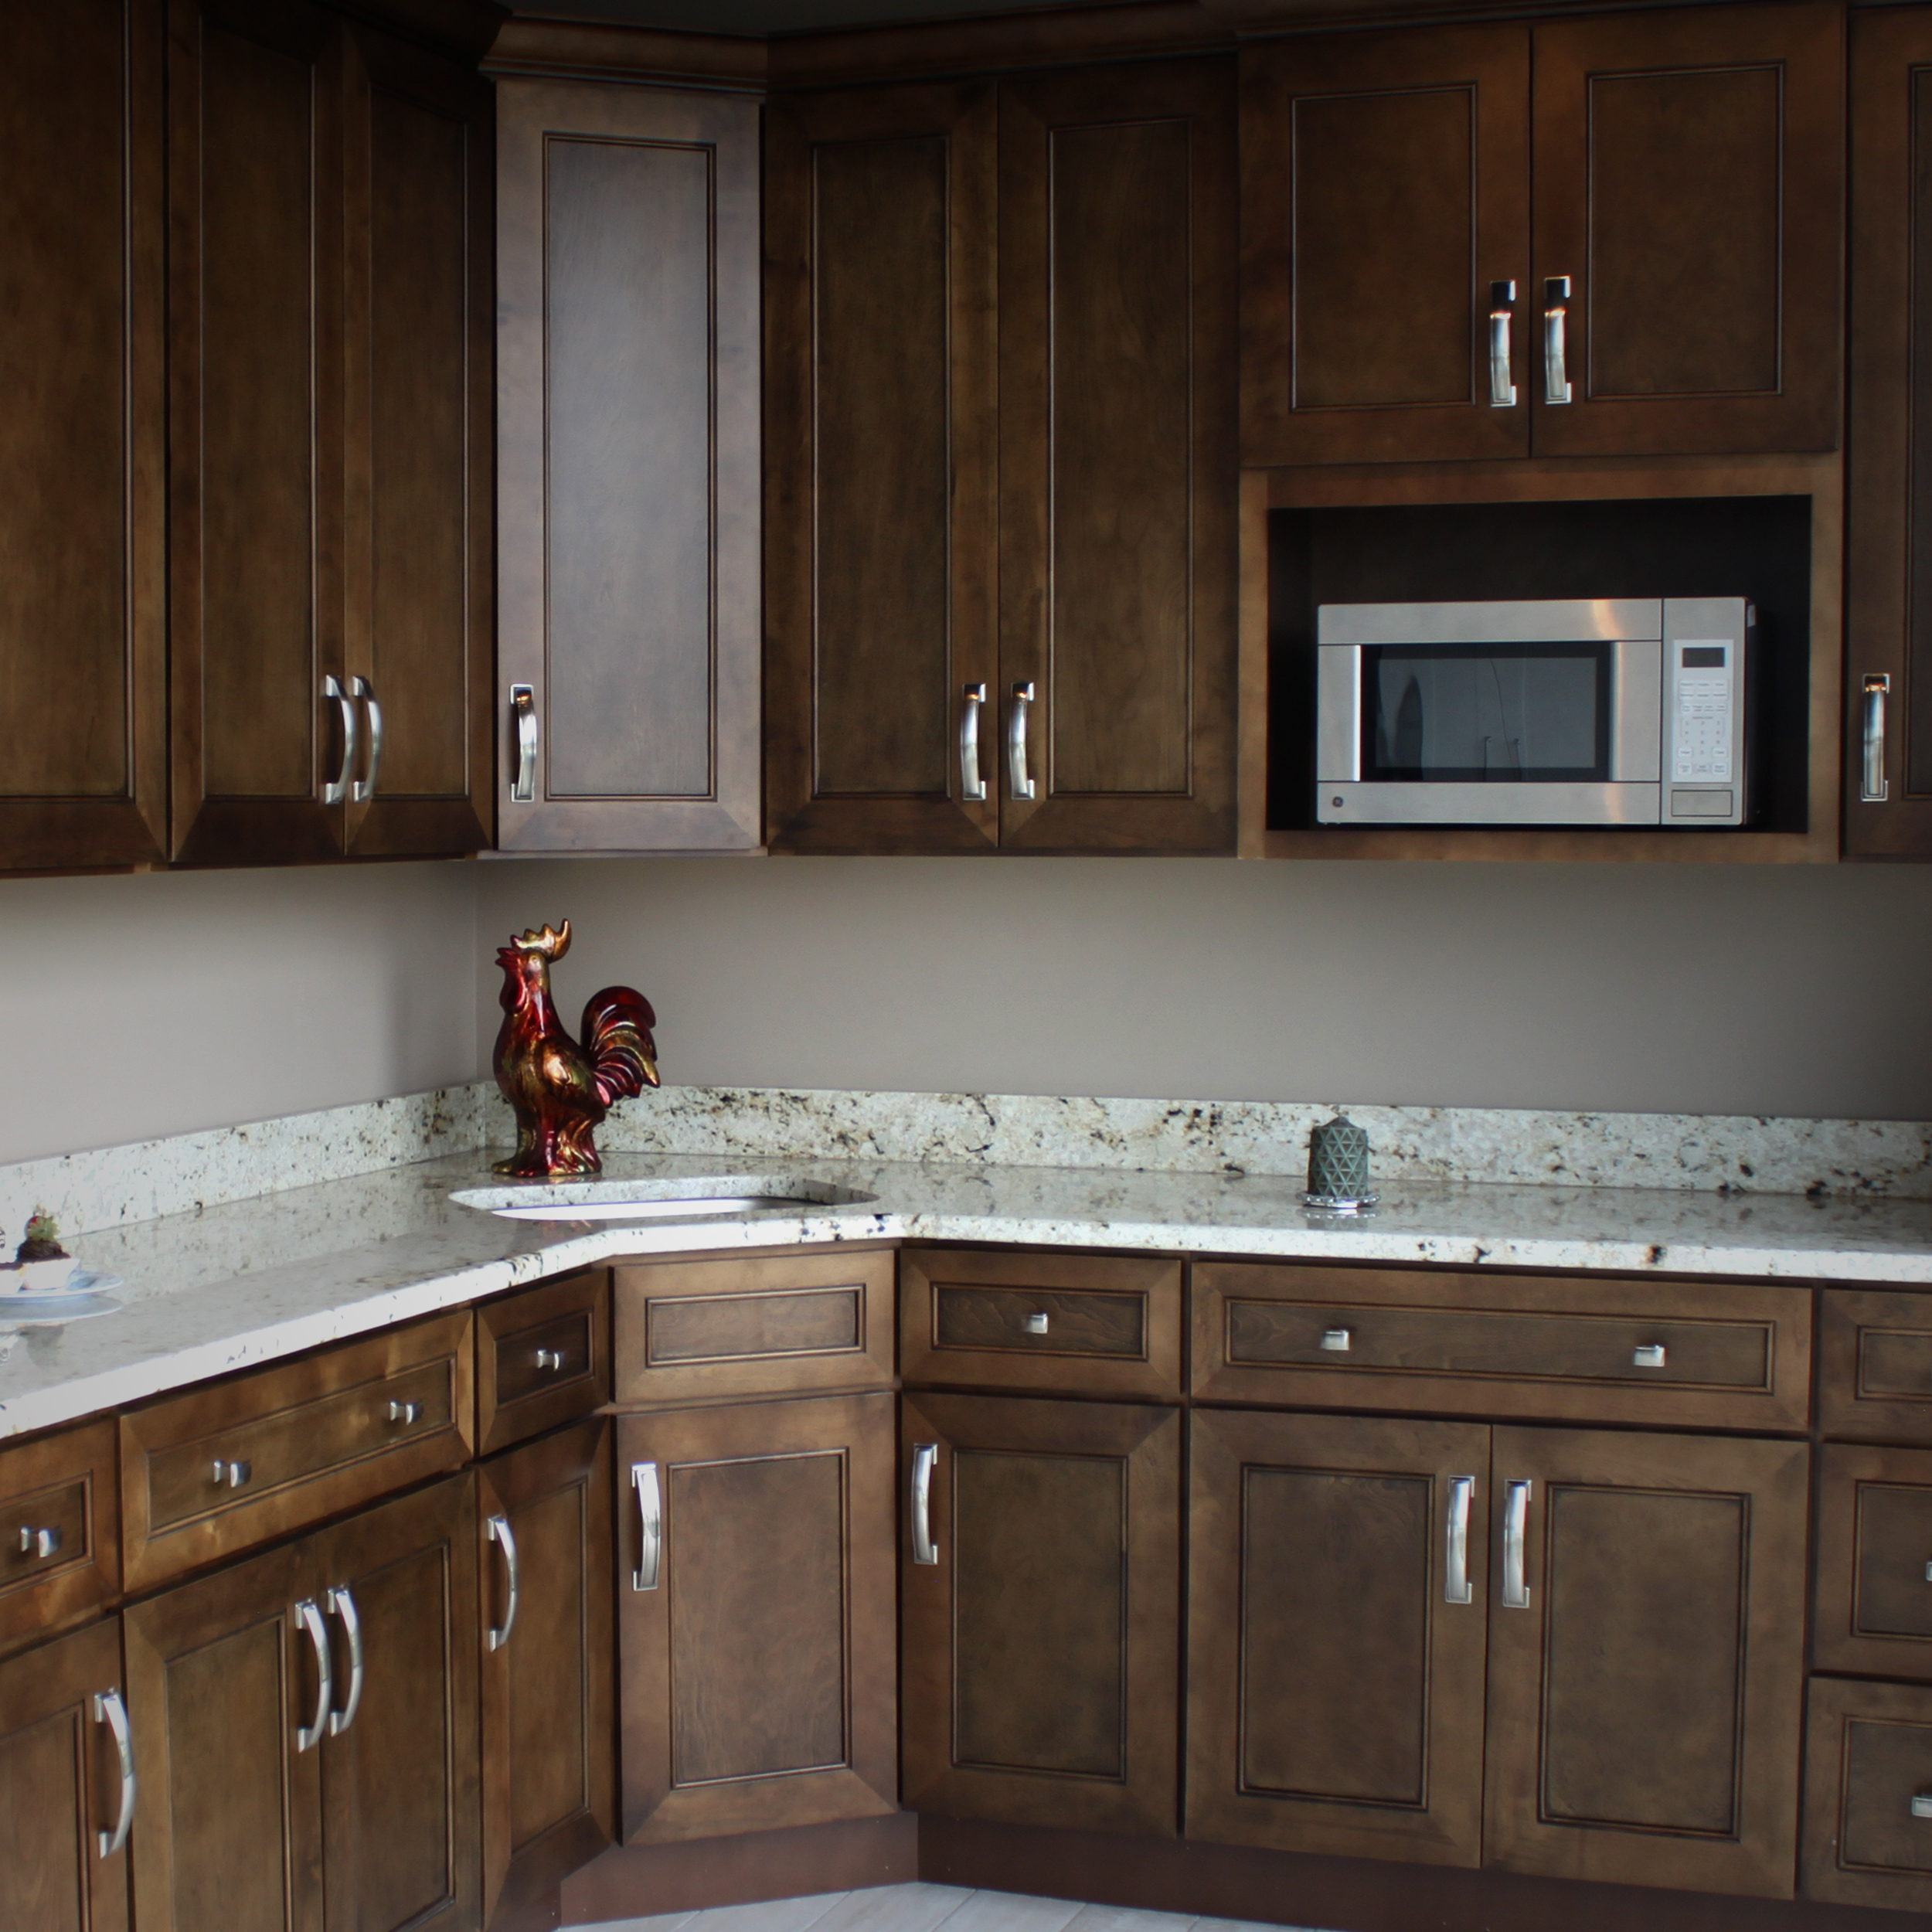 arlington heights kitchen cabinets discount kitchen countertops Arlington heights Discount Kitchen Cabinets Countertops and Sinks